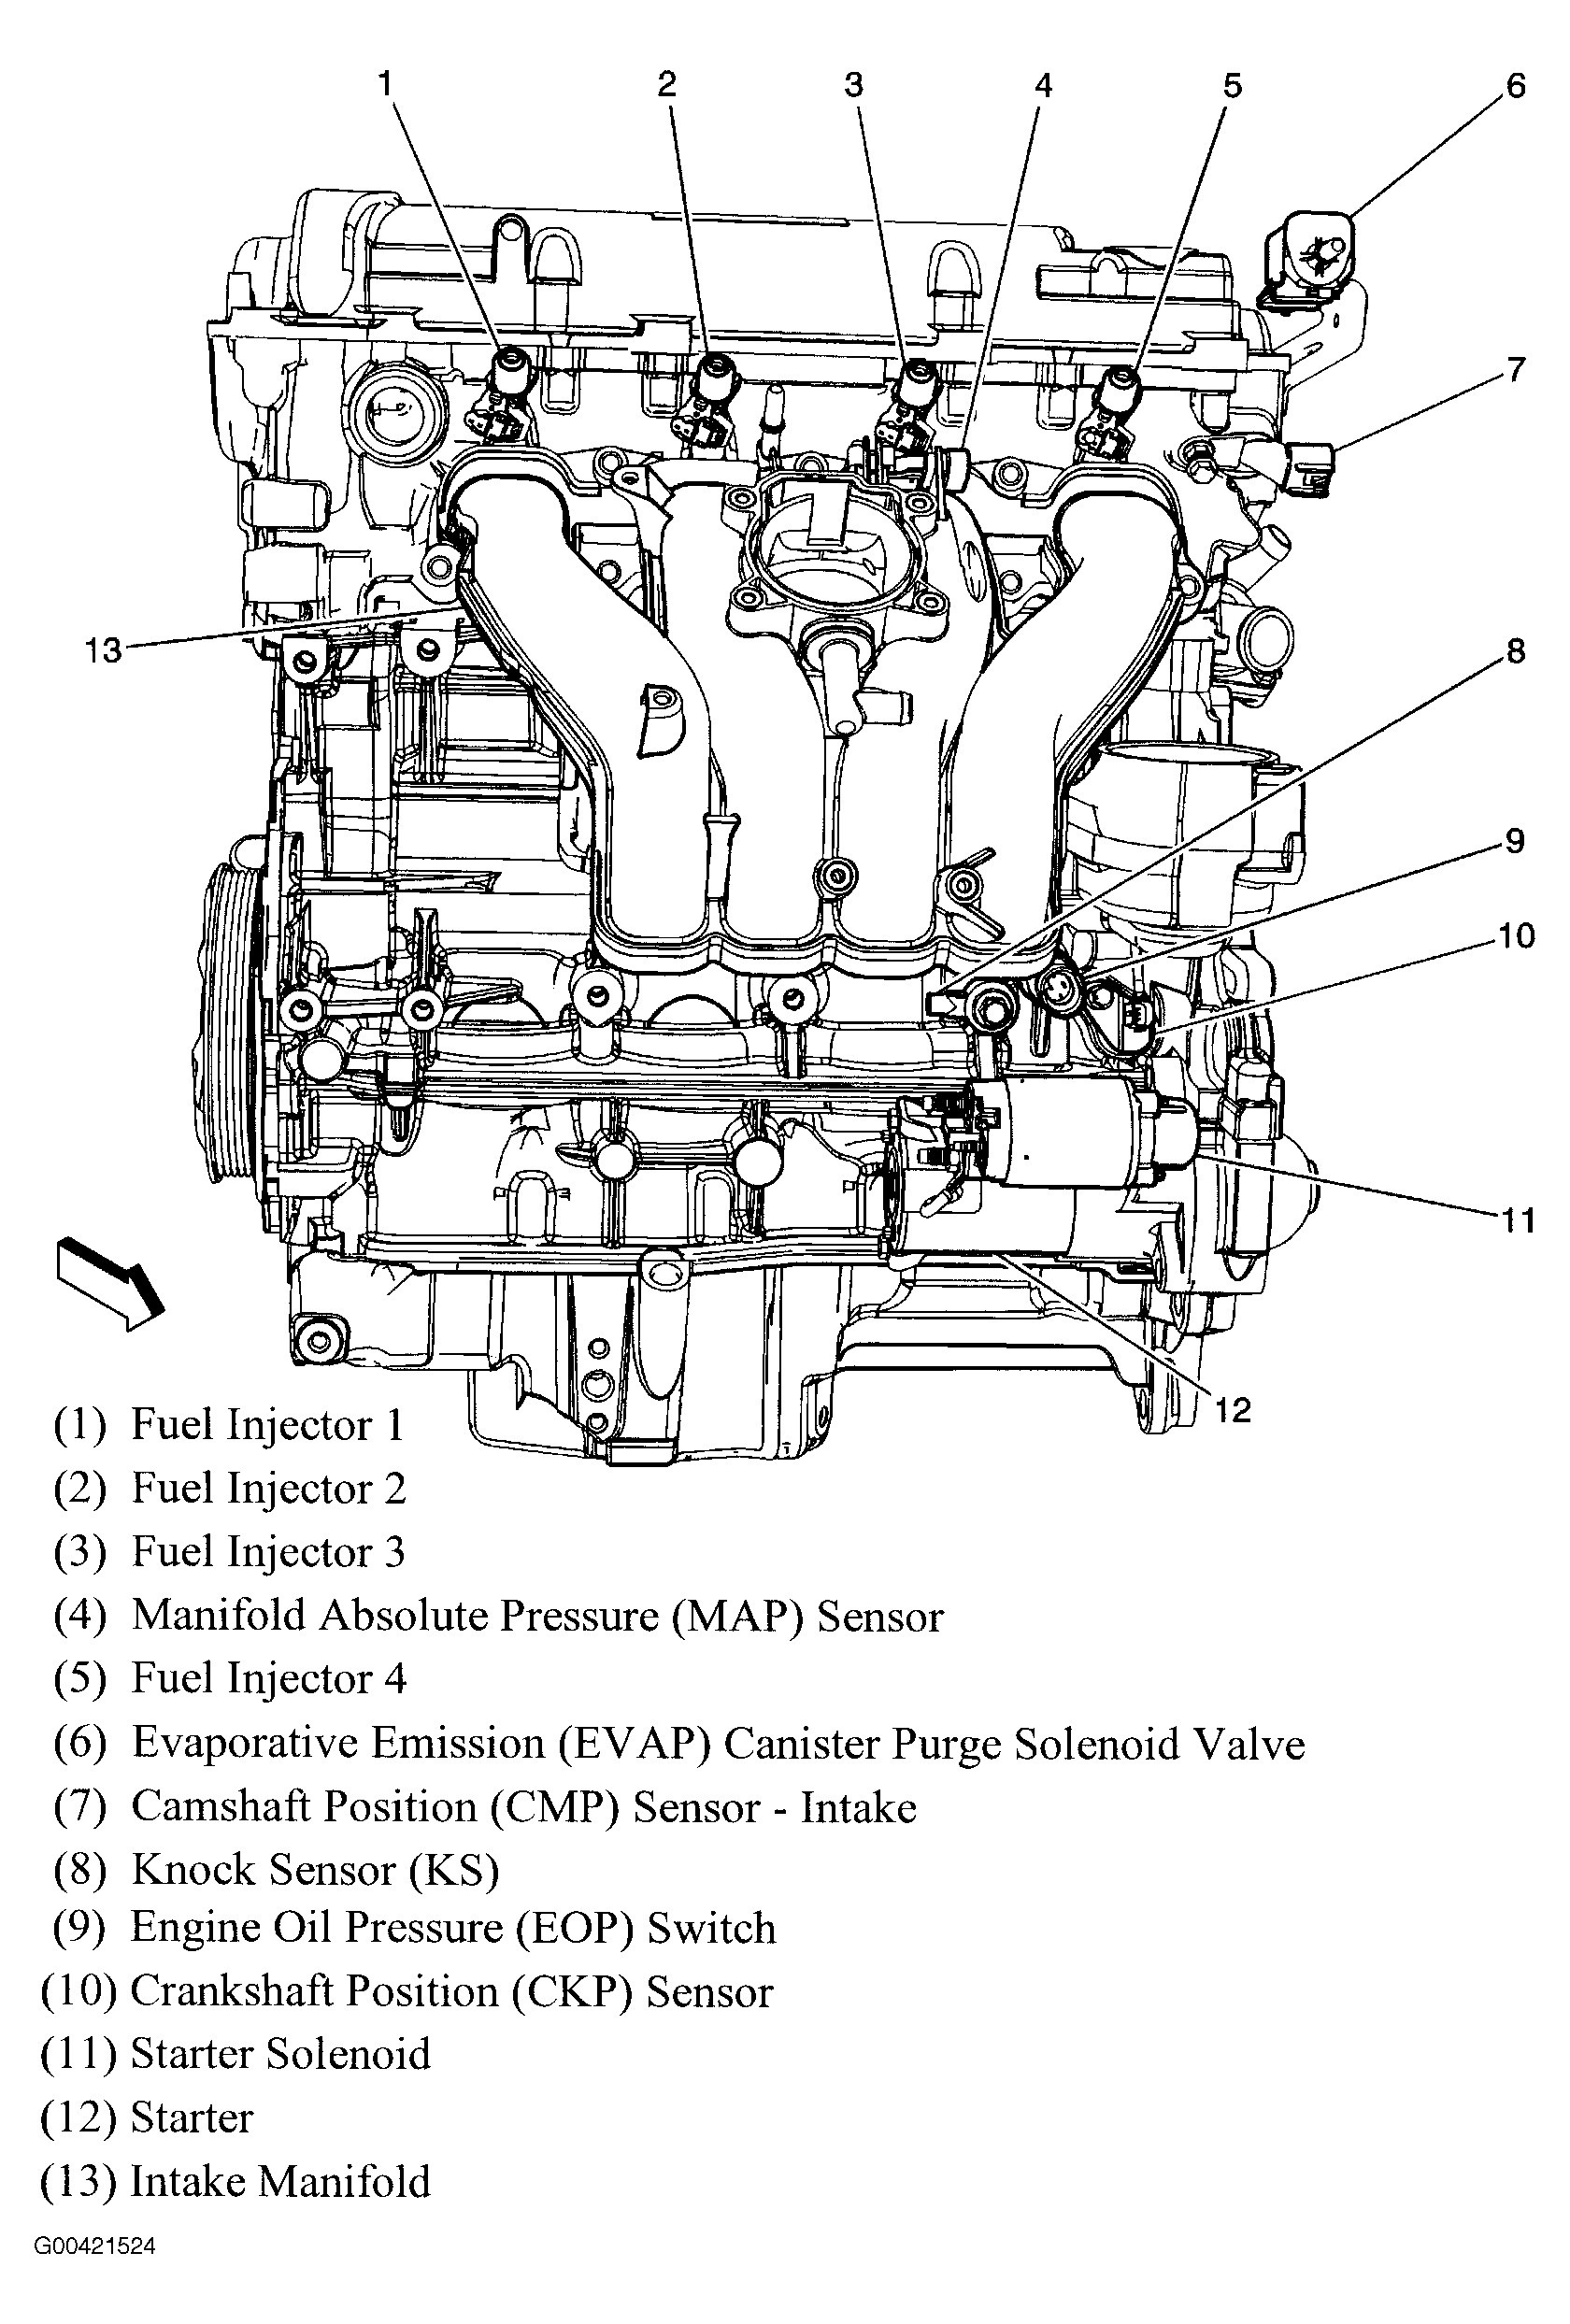 hight resolution of dodge 4 7 liter engine diagram wiring diagram toolboxdodge 2 7 liter engine diagram wiring diagram